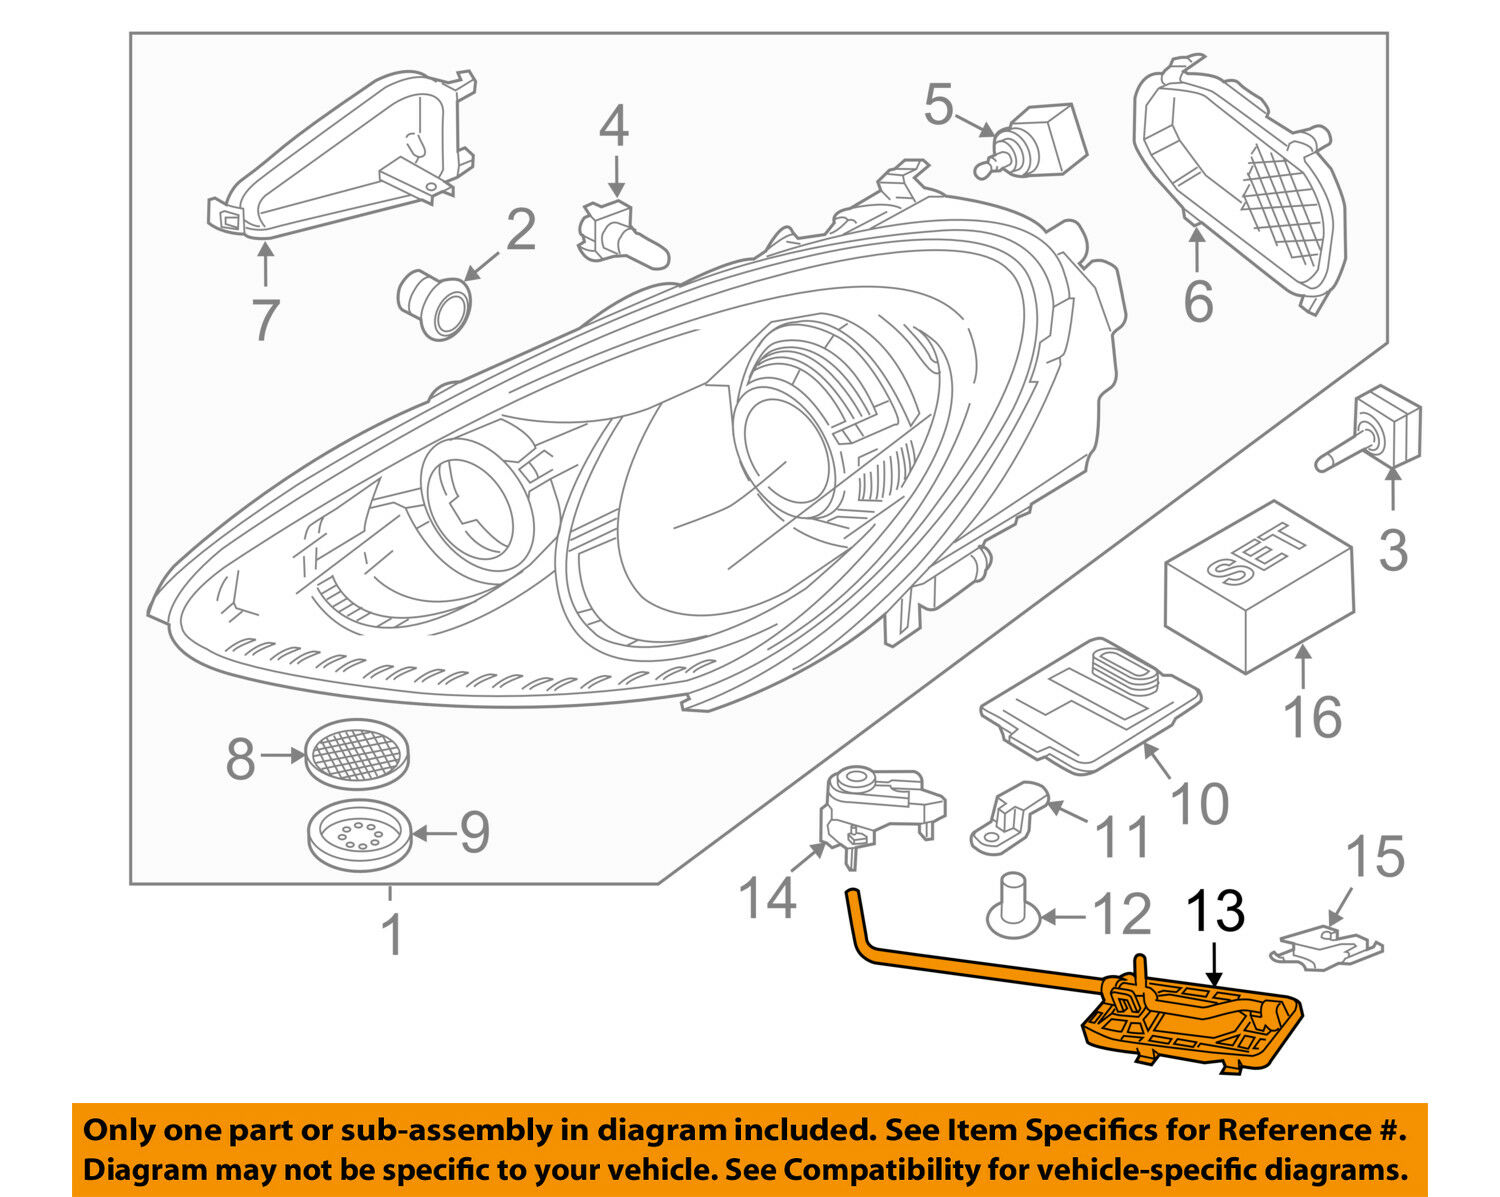 Porsche Oem Cayenne Headlight Head Light Lamp Mount Assembly Left Wiring Harness 1 Of 2only Available